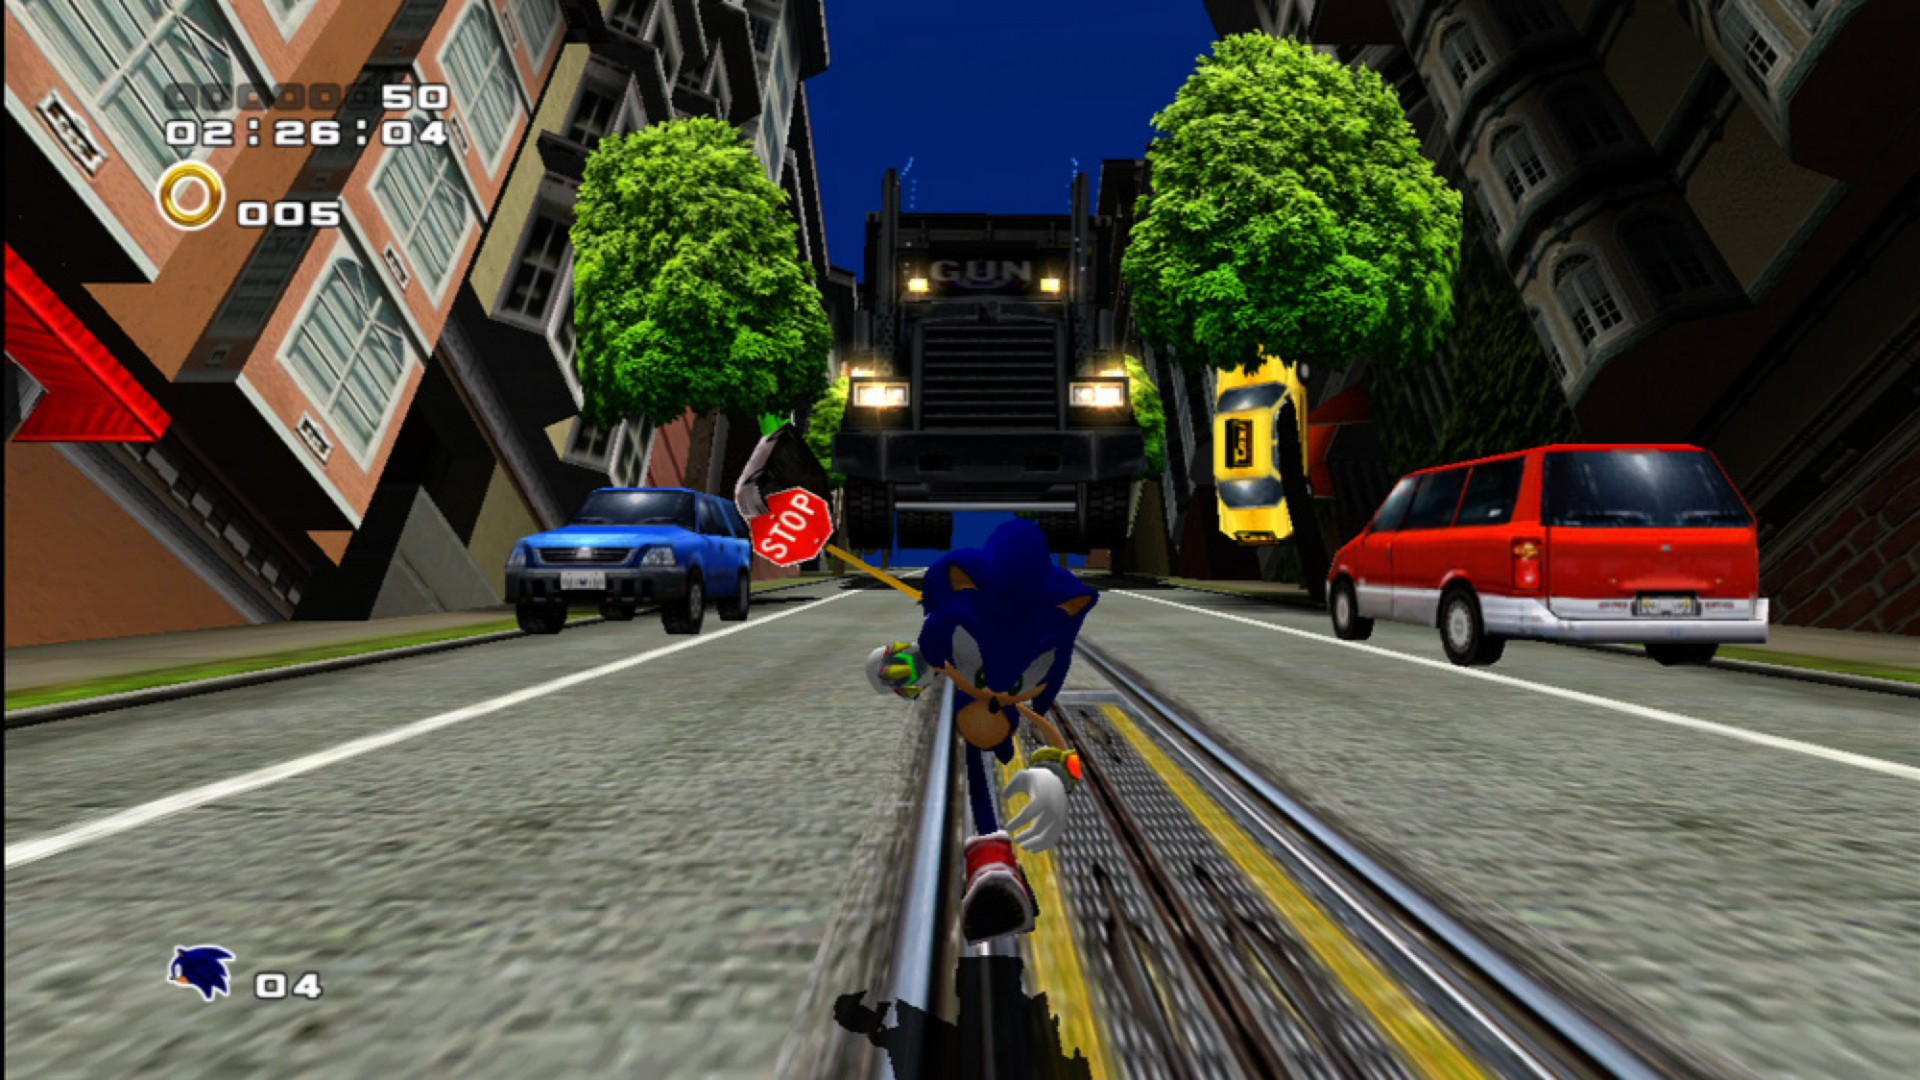 Download Sonic Adventure 2 Full PC Game